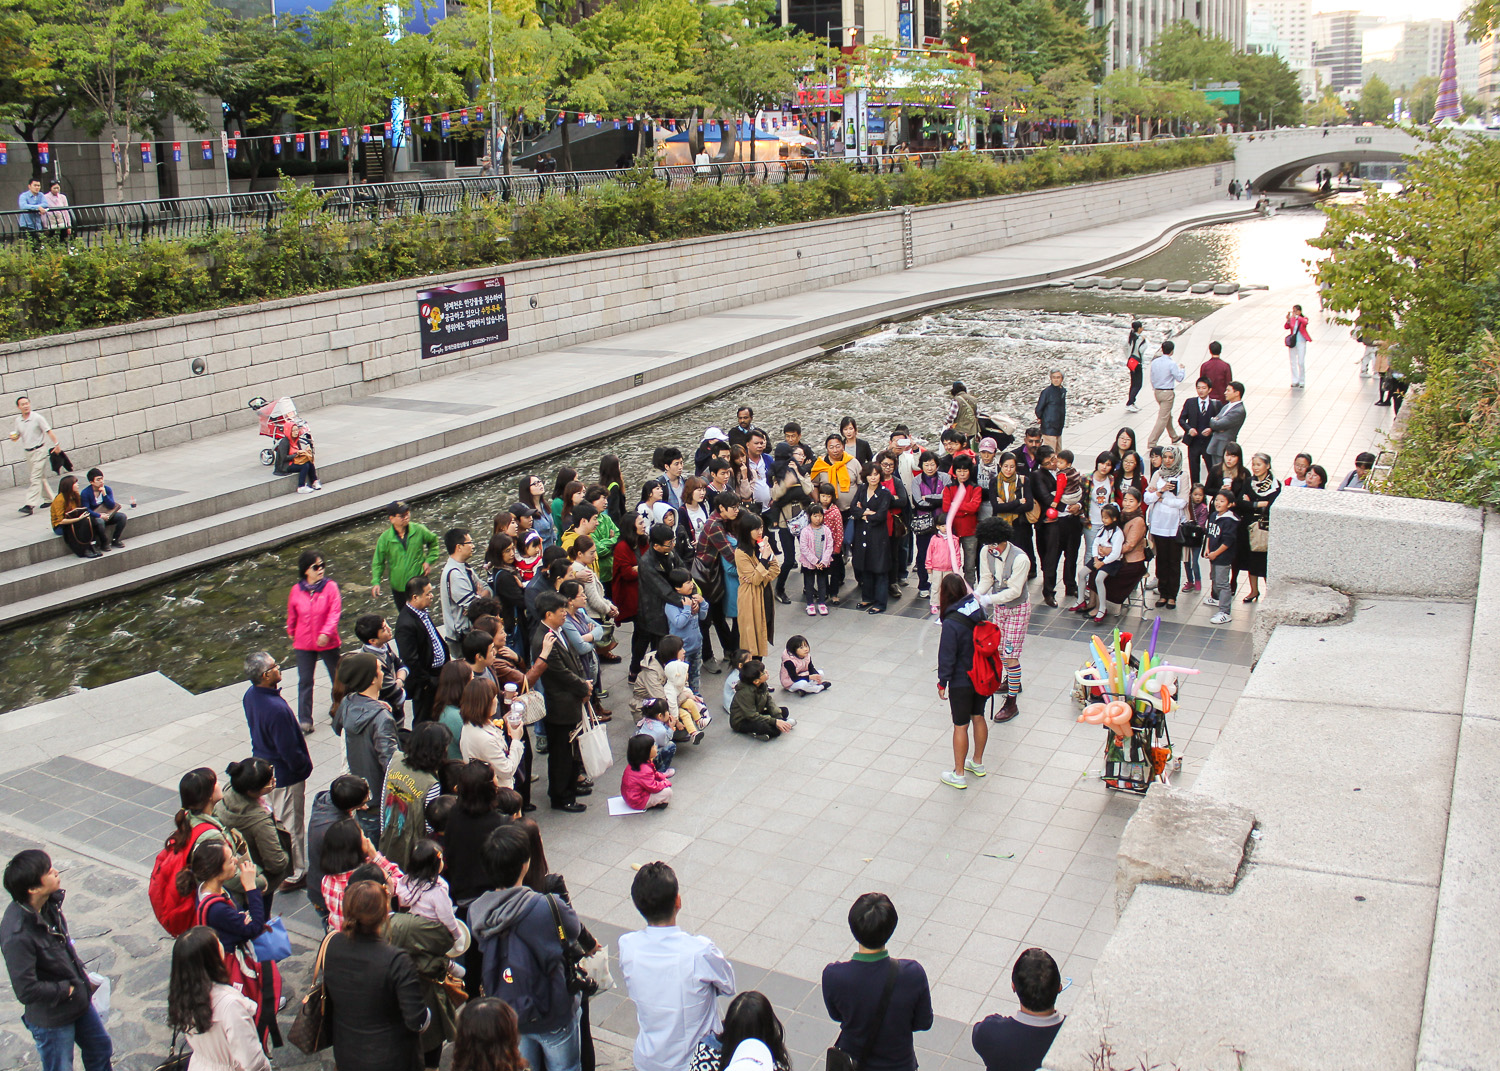 Entertainers along the banks of the Cheonggyecheon. Image:   © Alan Williams